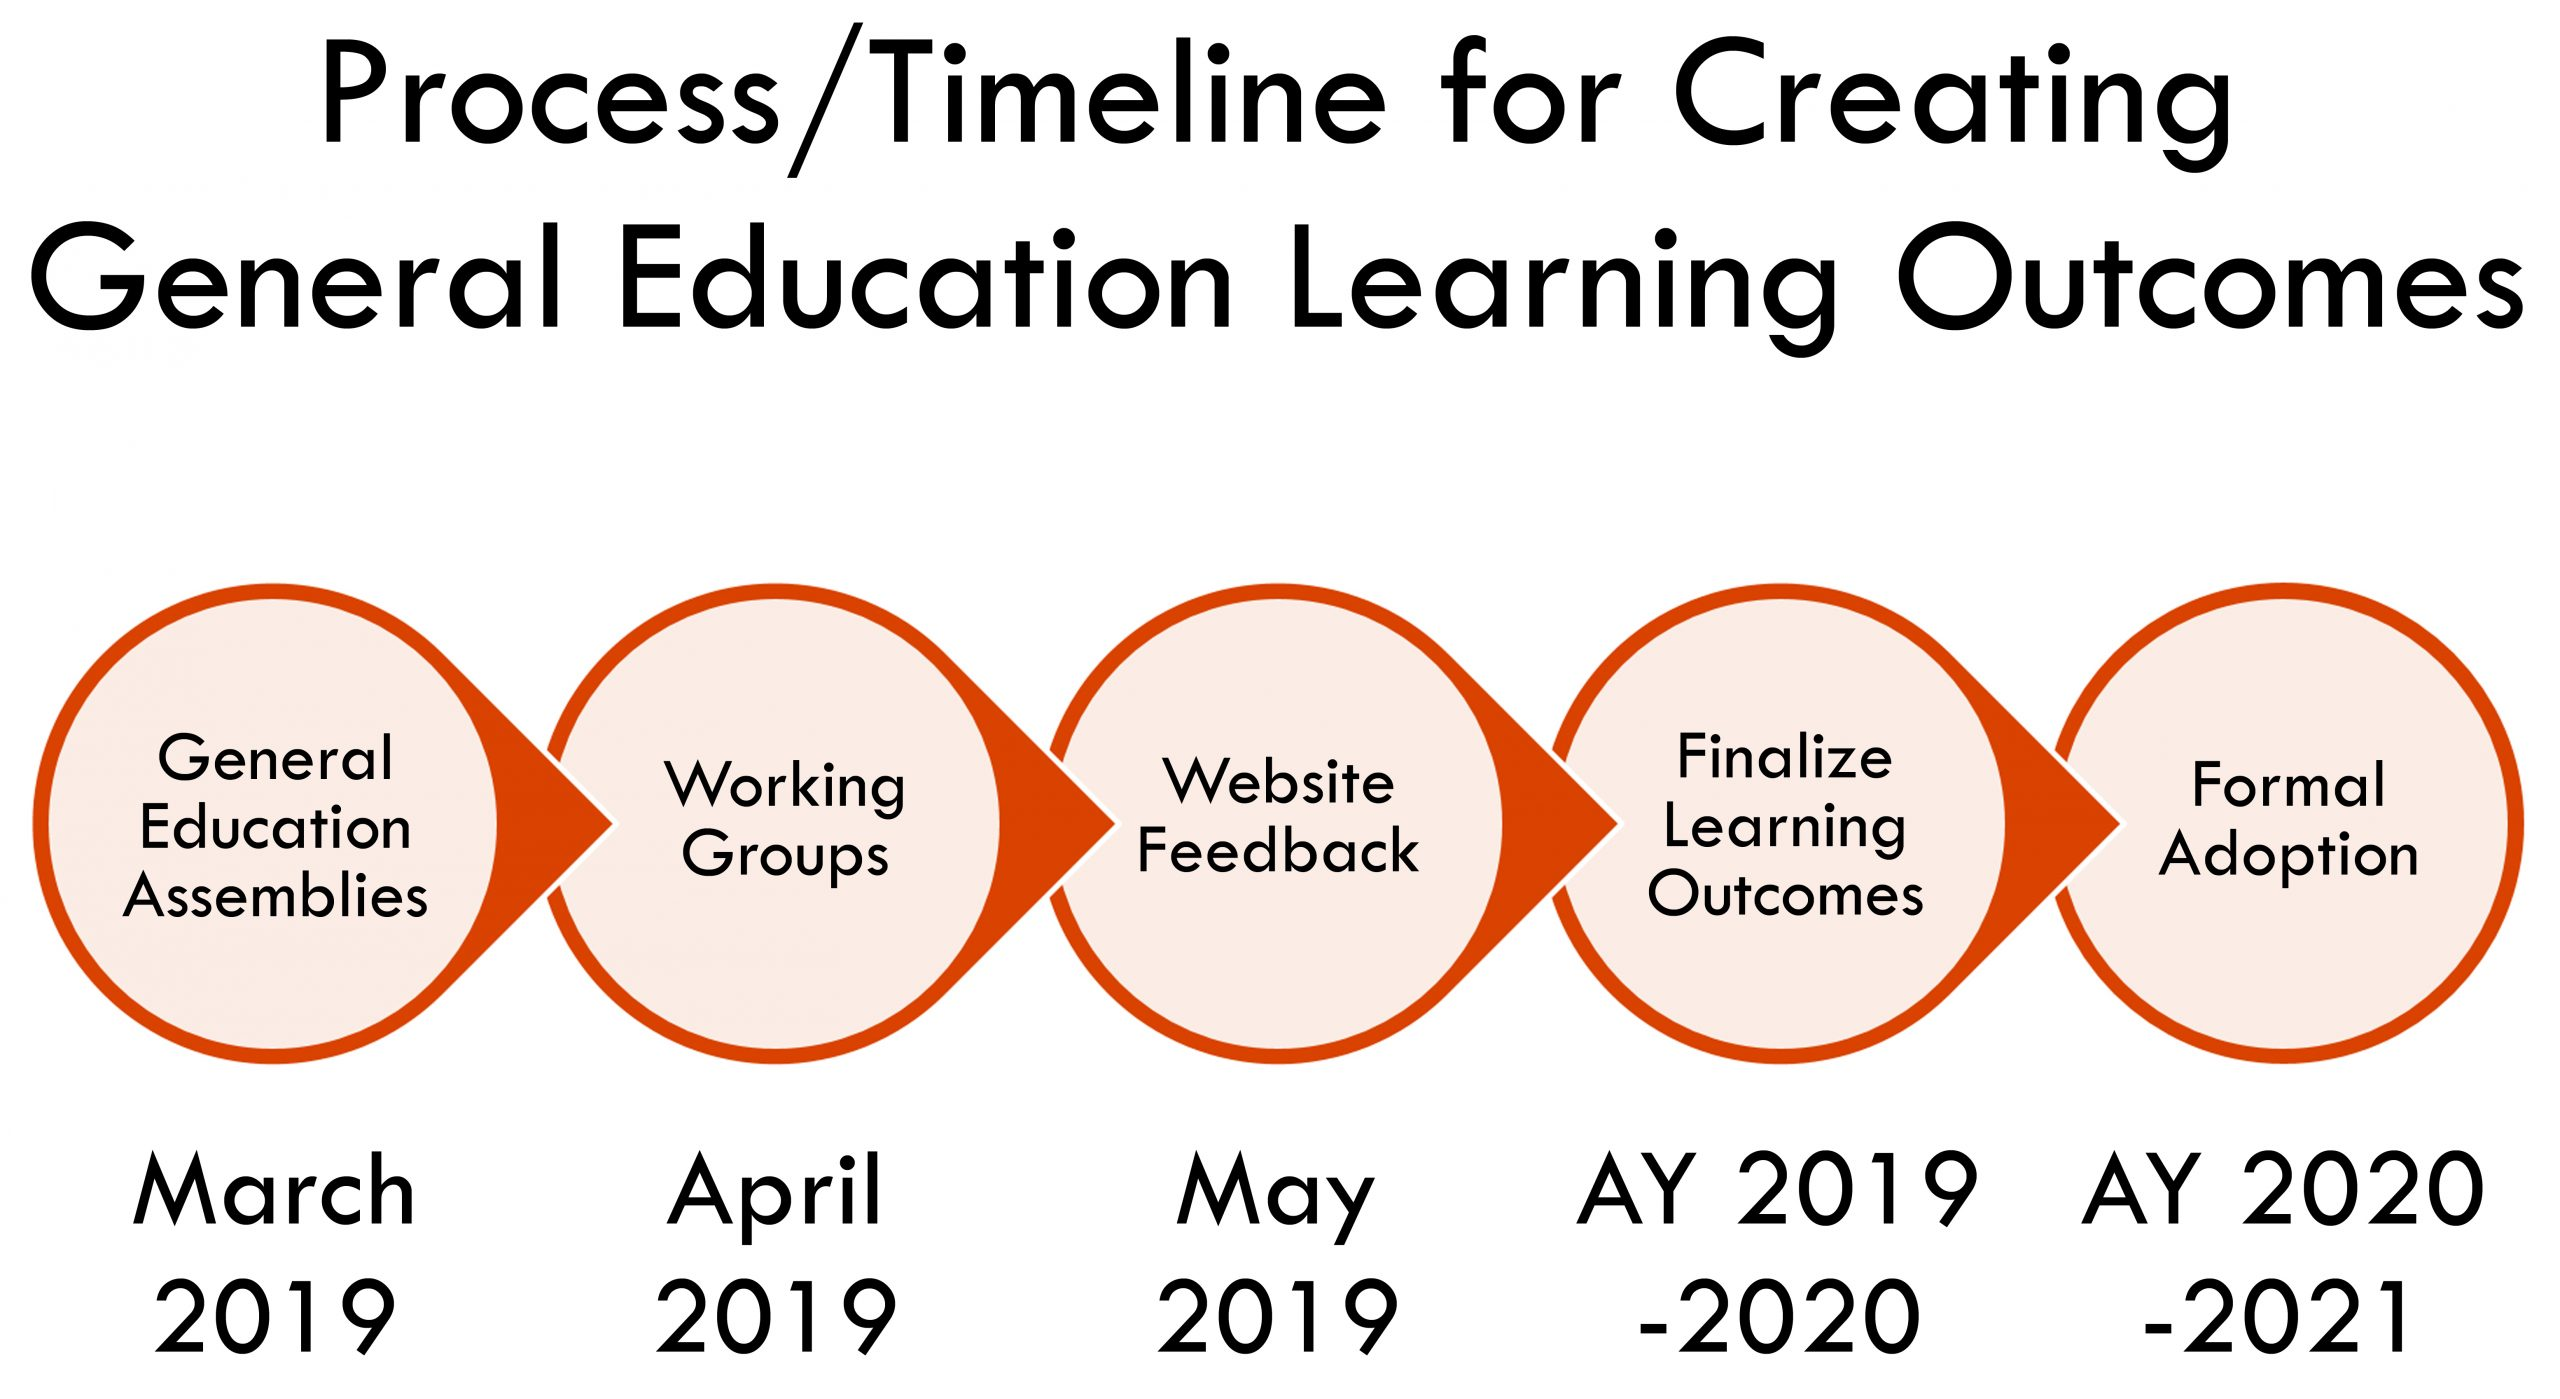 Process/Timeline for Creating General Education Learning Outcomes